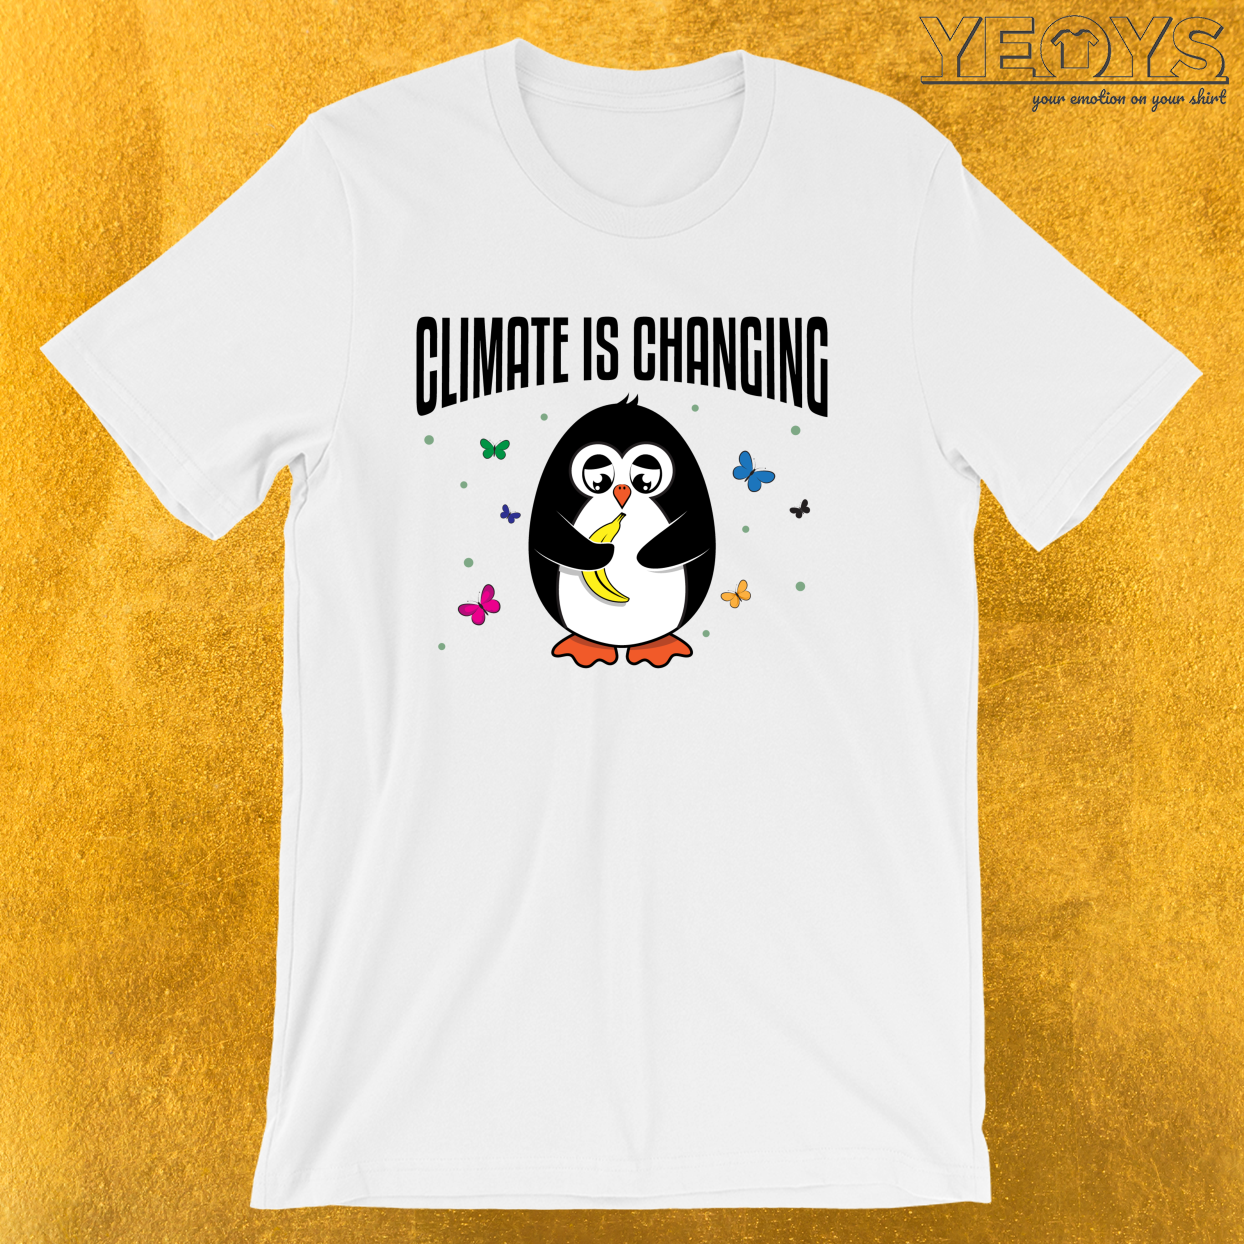 Climate Is Changing – Environmental Quotes Tee